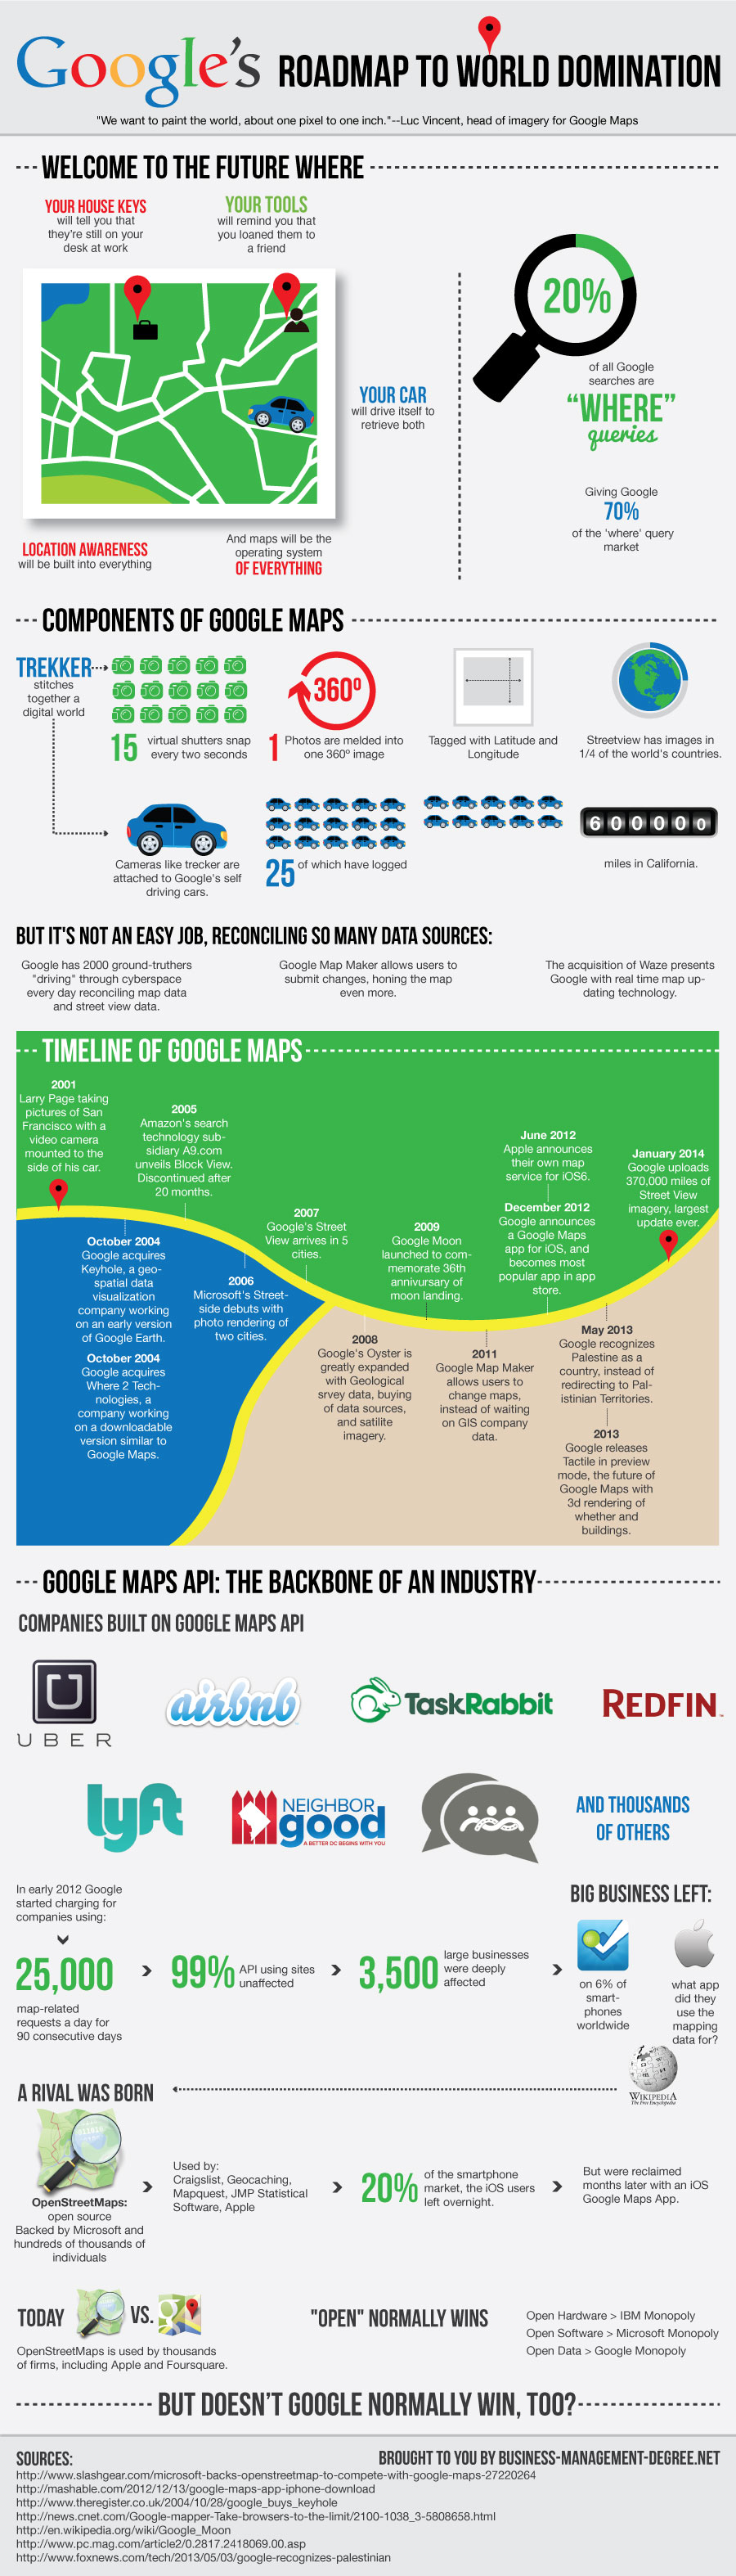 Google's Roadmap to World Domination